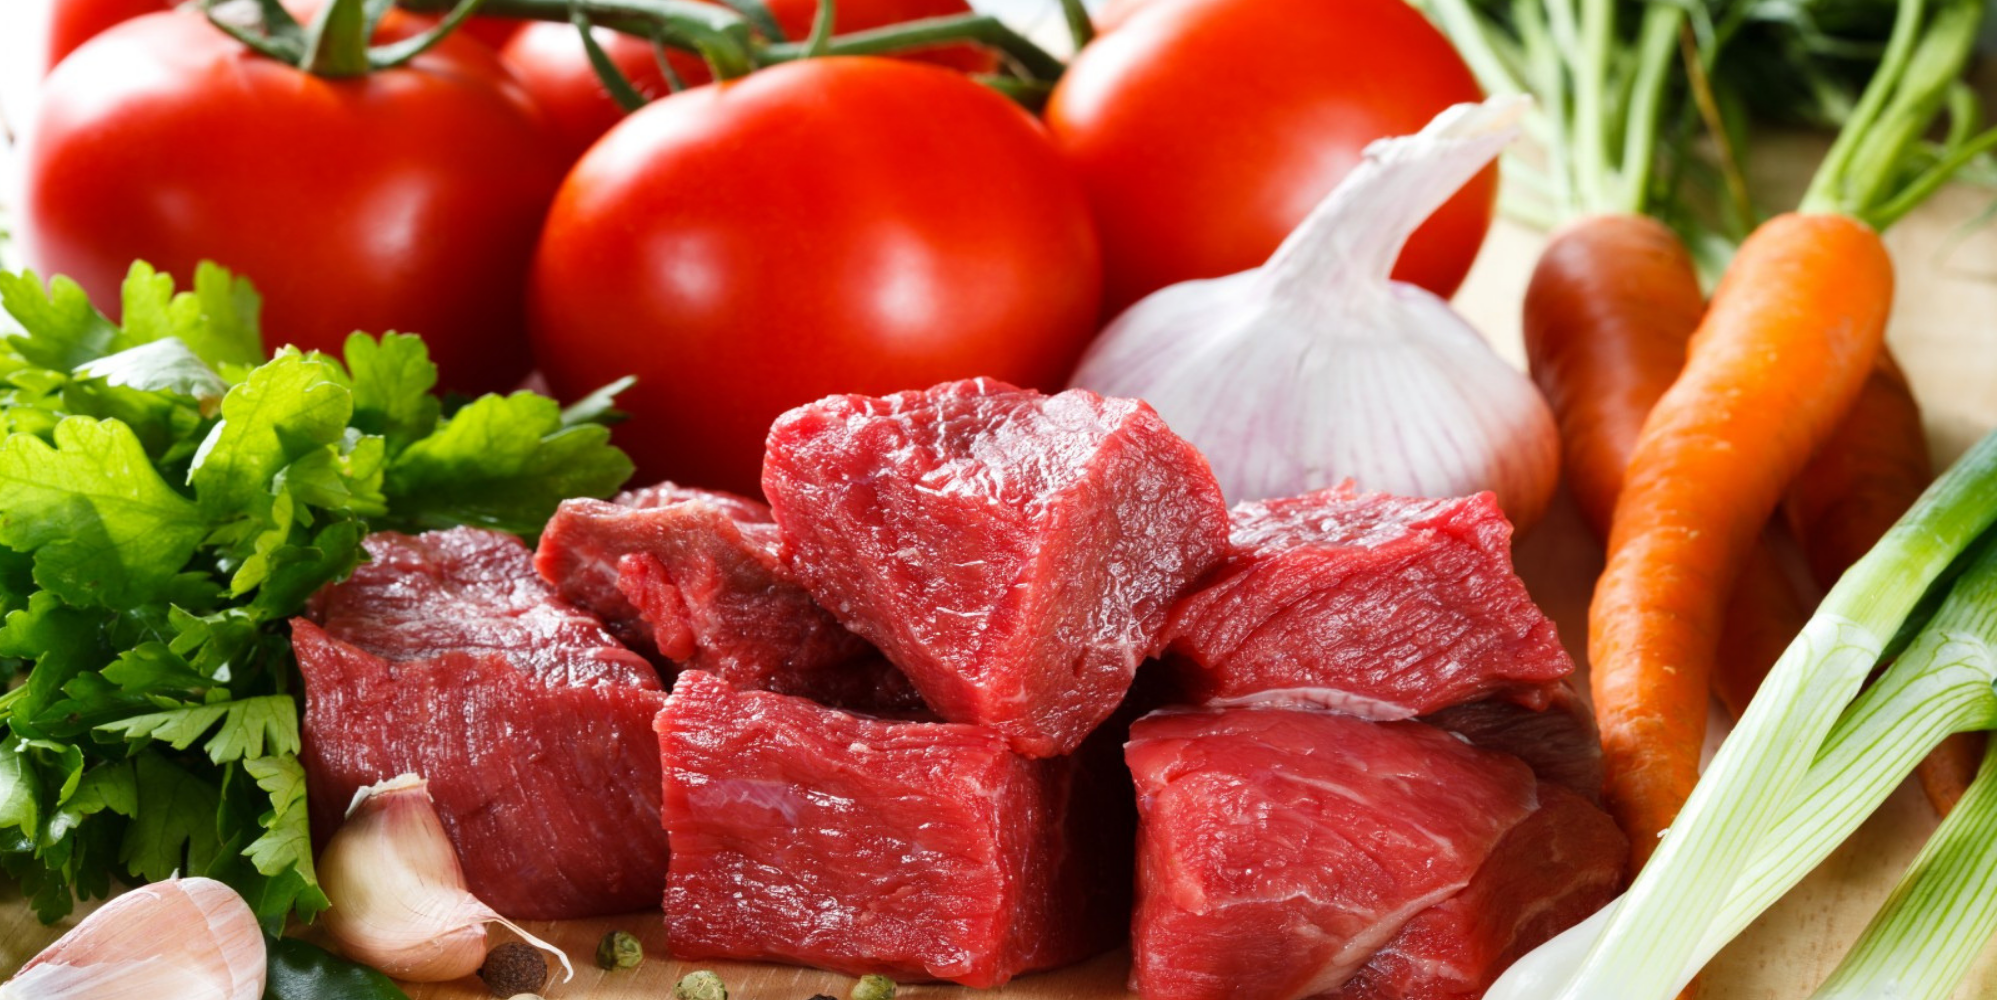 Cutting Meats, Fruits and Veggies to Trim Your Food Cost